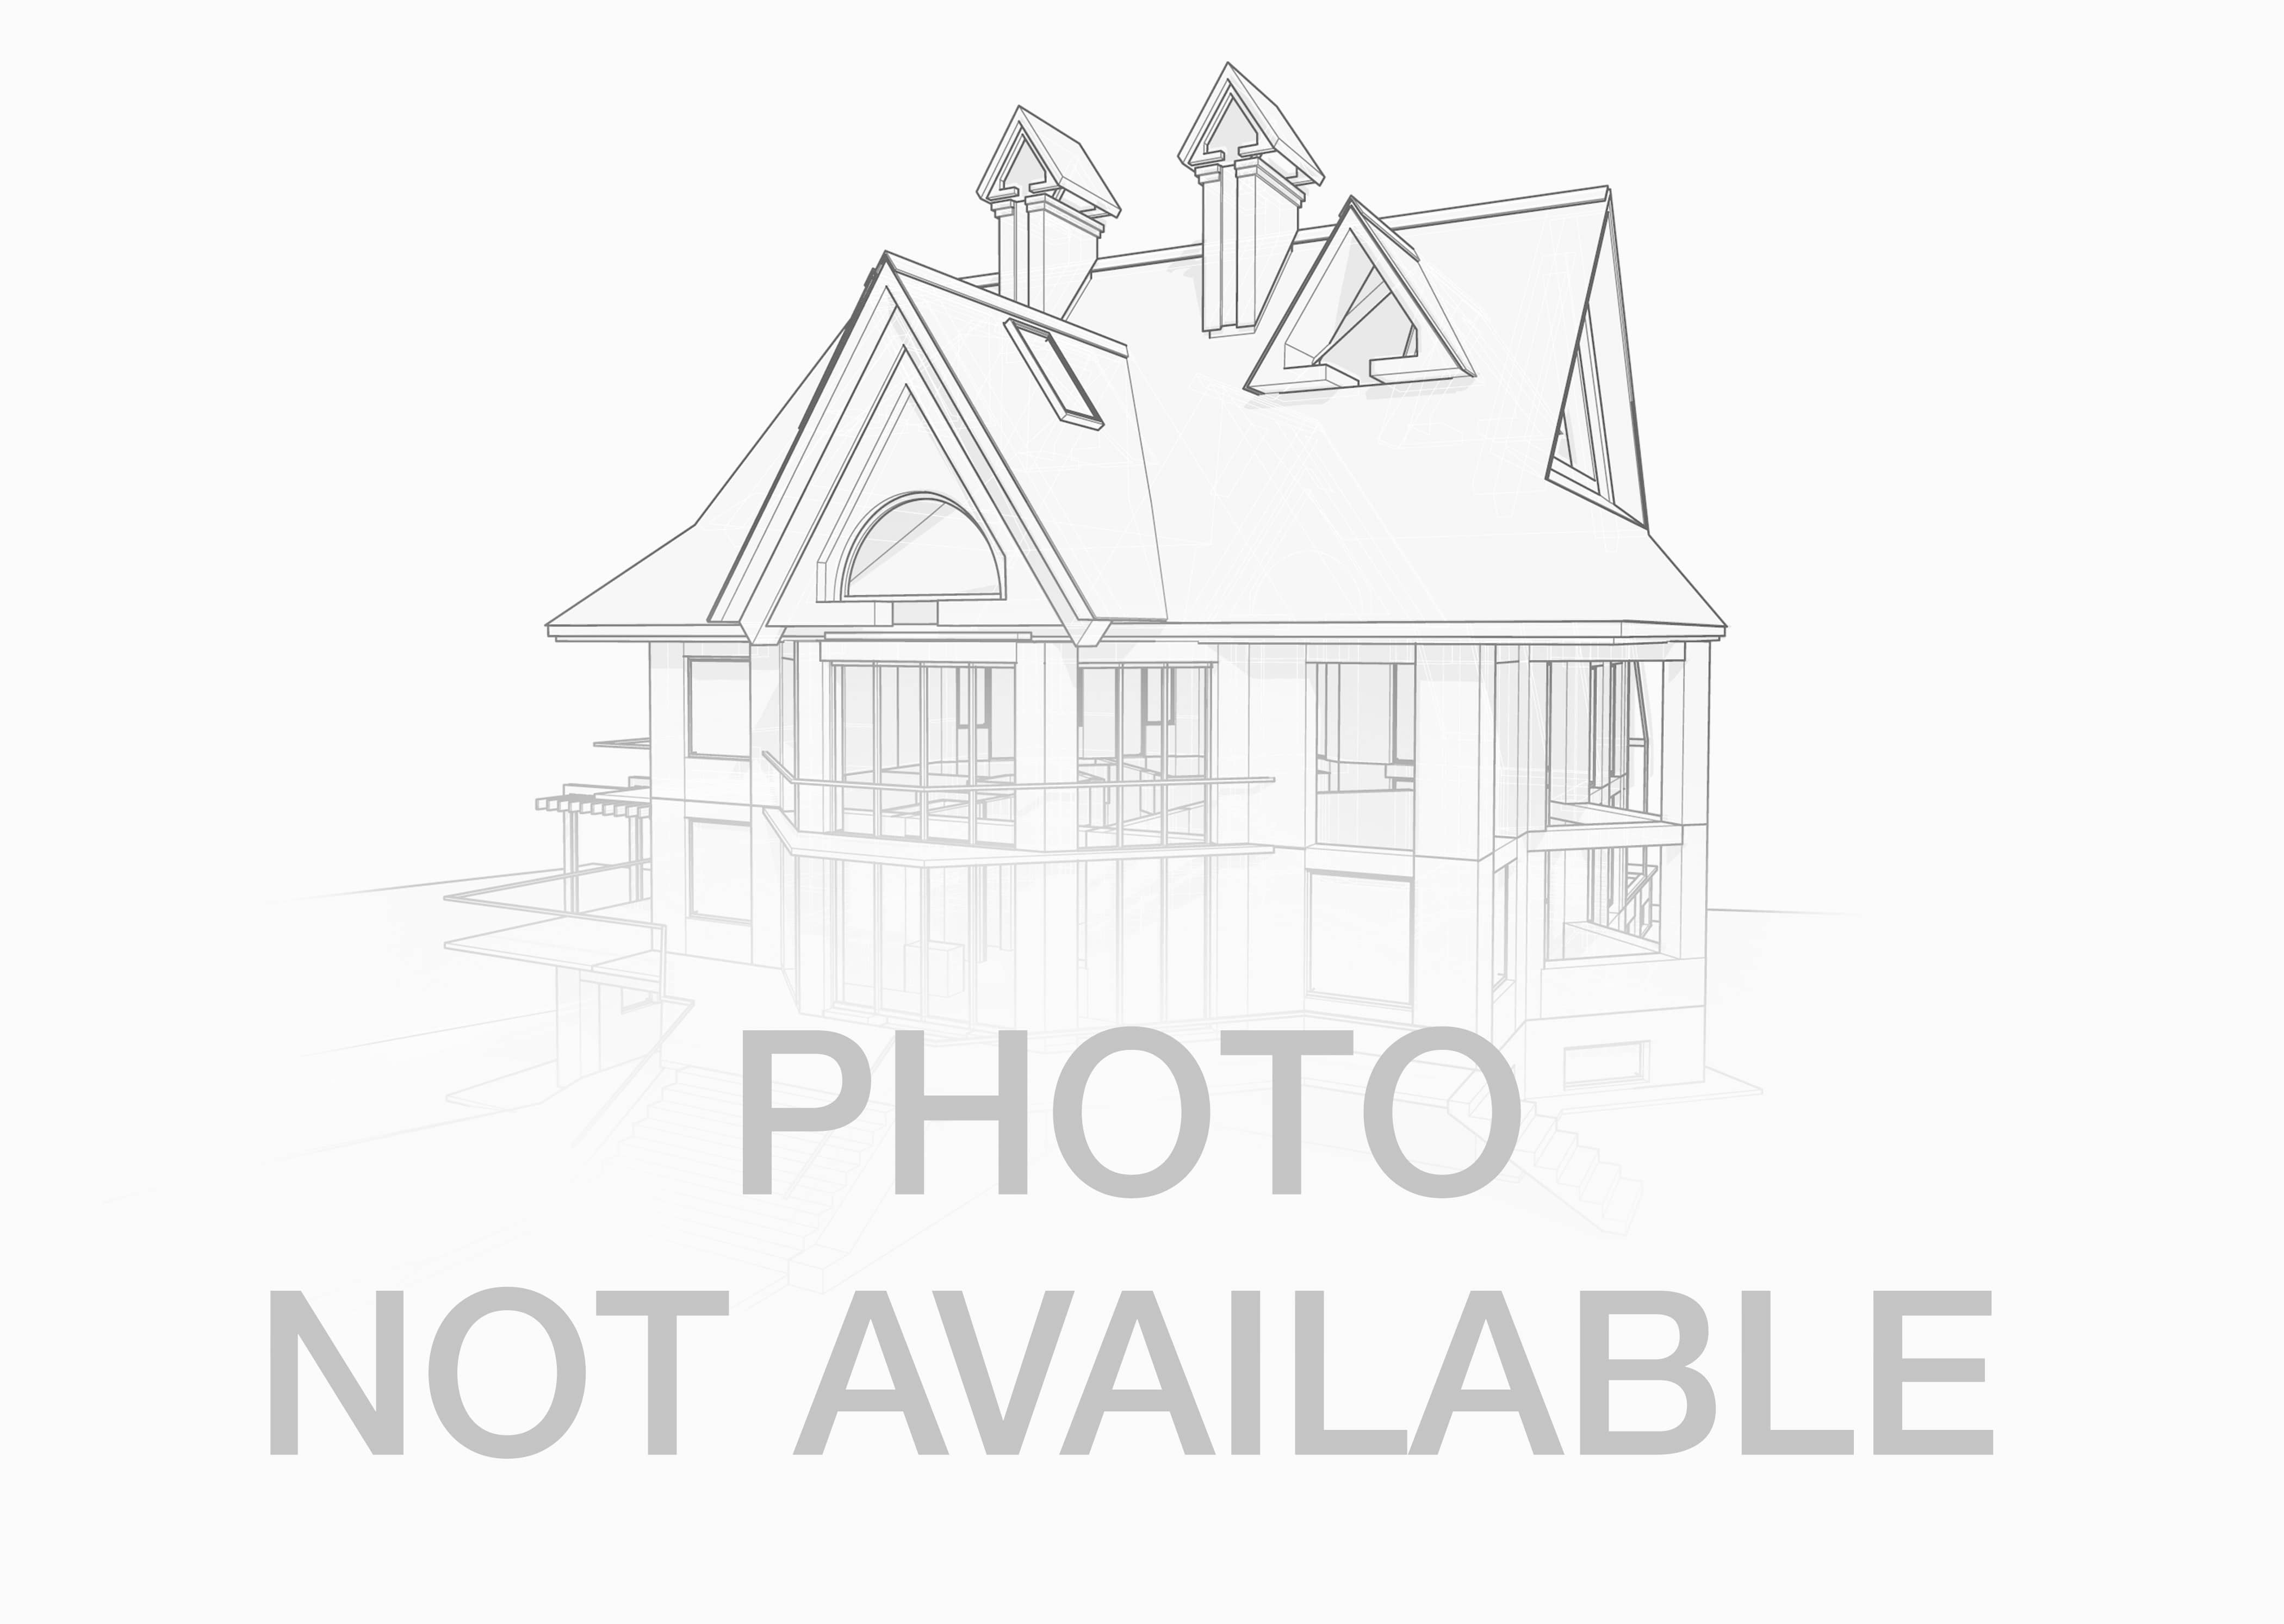 Morgantown Wv Homes For Sale